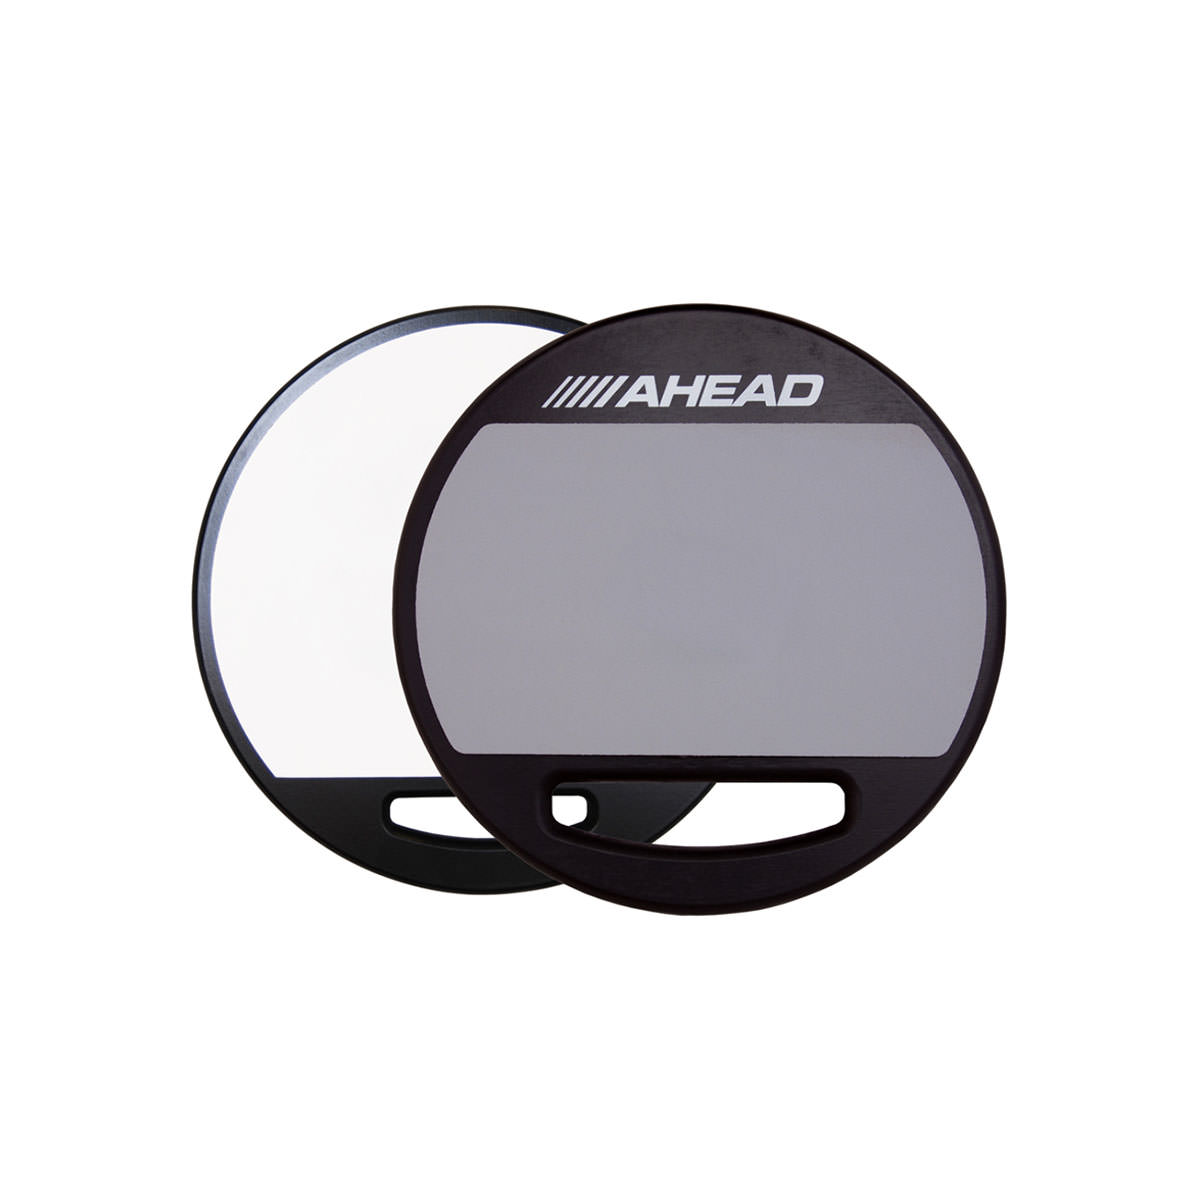 Ahead 14″ Double Sided Brush Pad 1